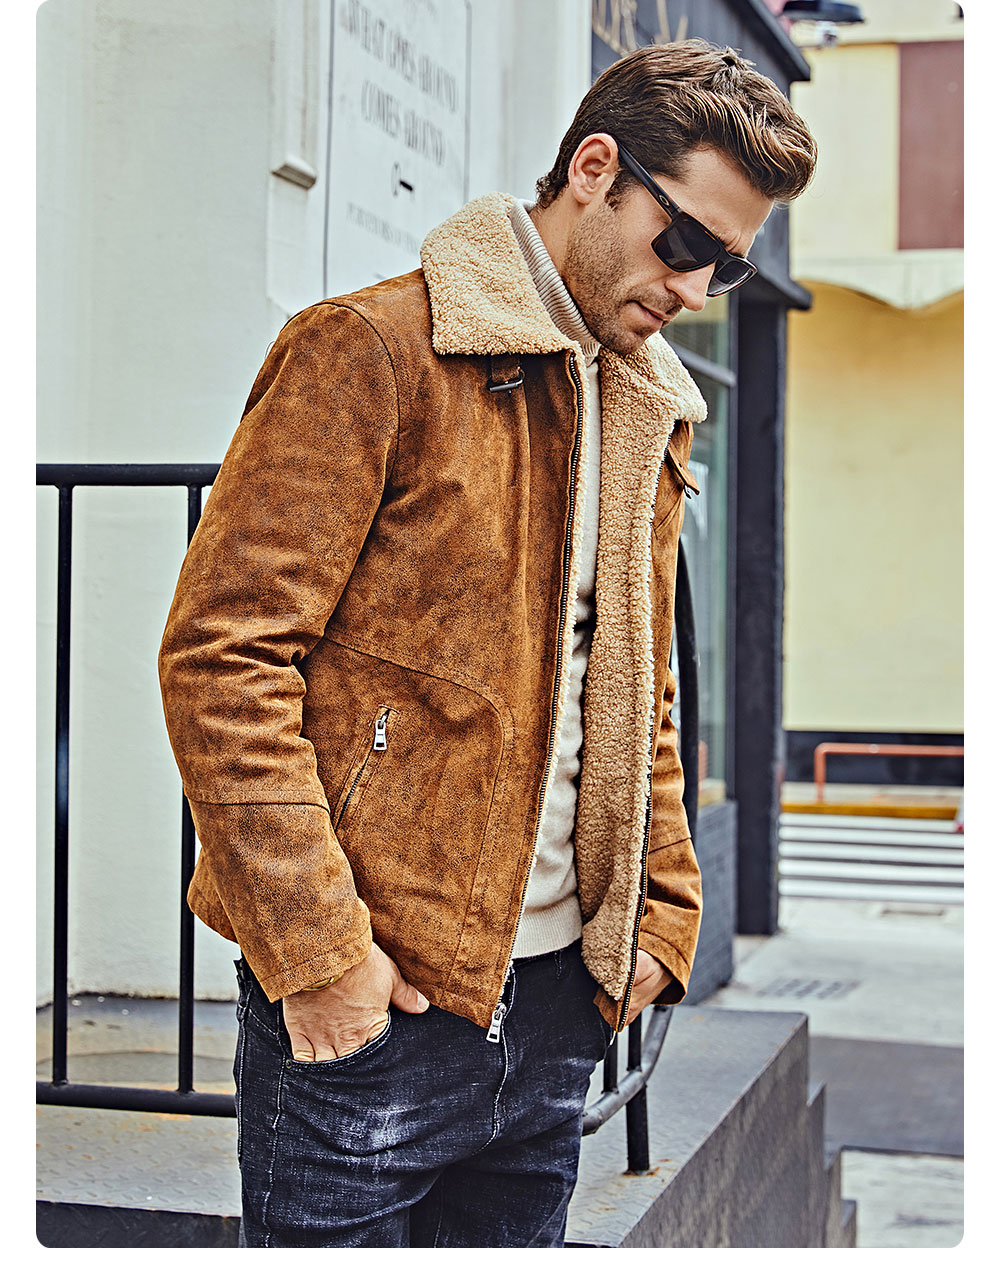 H3e7911f1194f409c82fdc192d2b55a64V FLAVOR New Men's Genuine Leather Motorcycle Jacket Pigskin with Faux Shearling Real Leather Jacket Bomber Coat Men